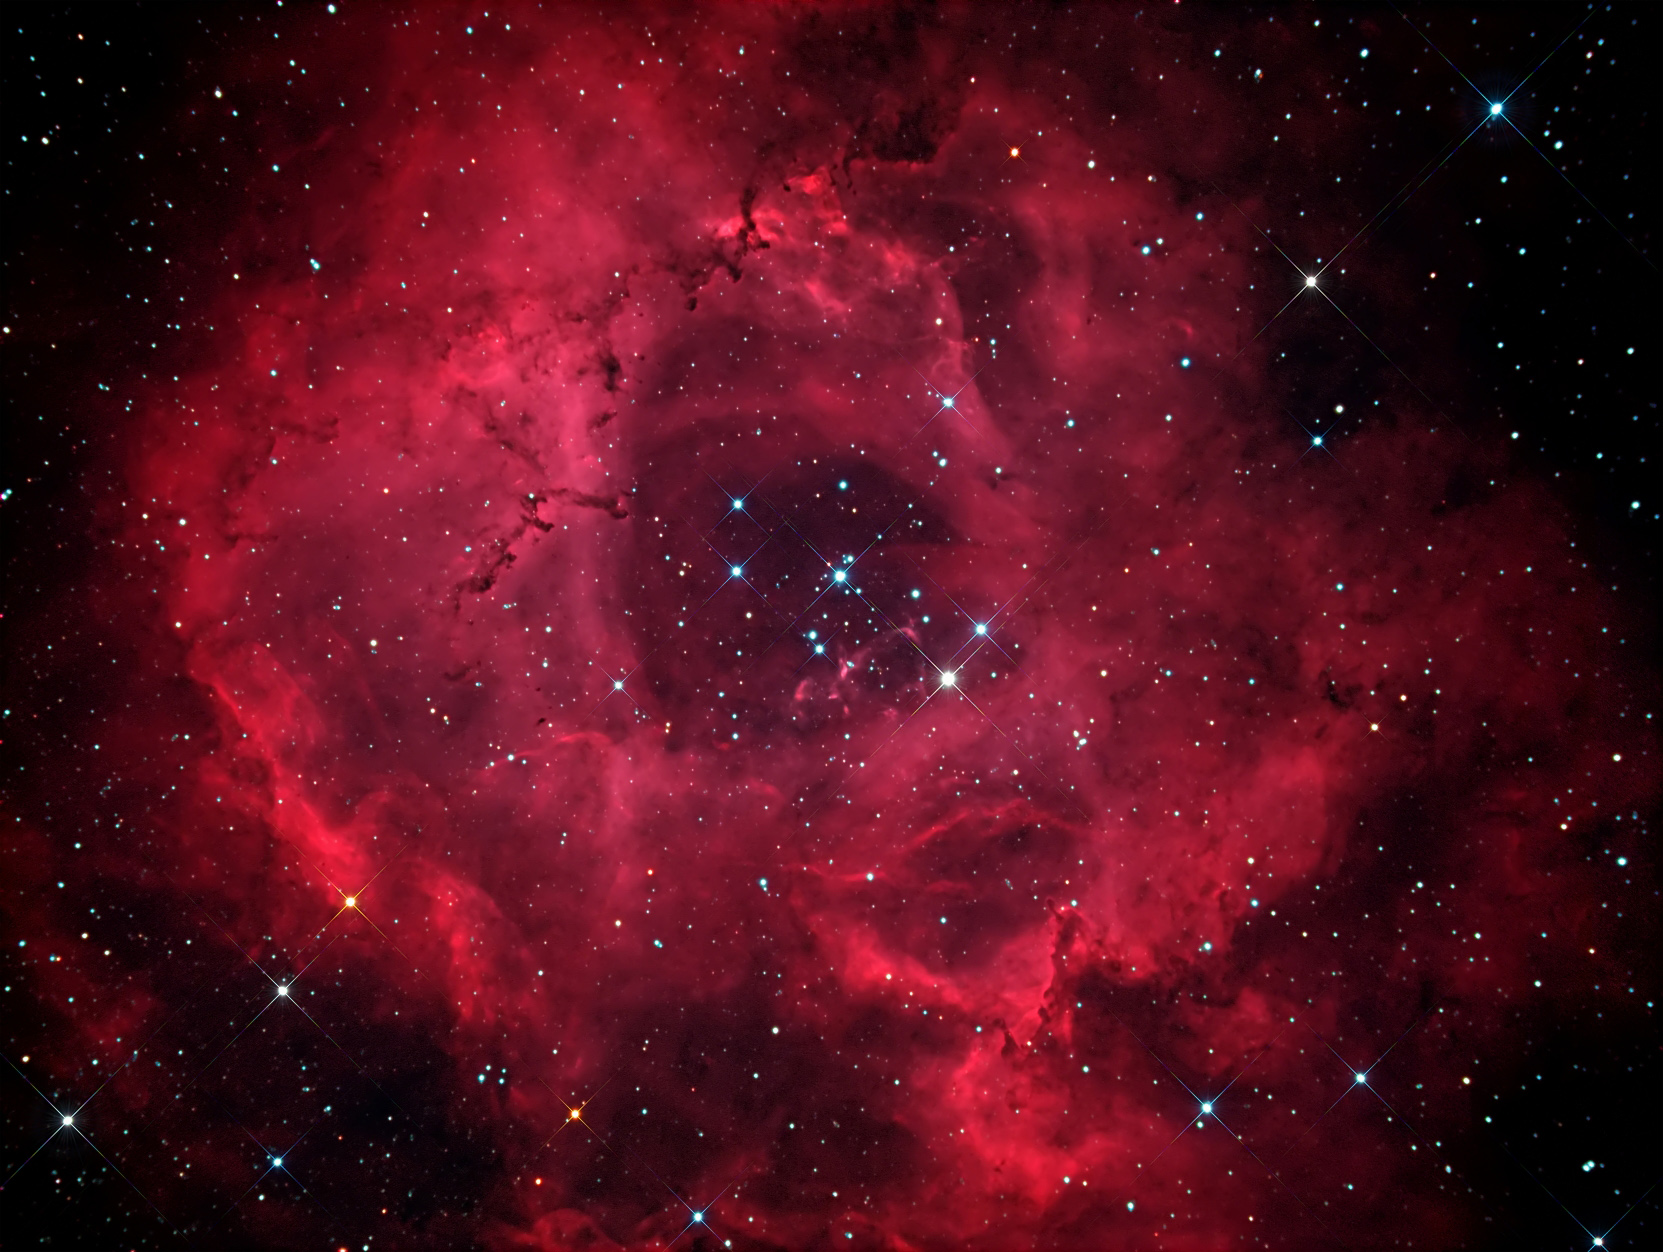 Amateur Astronomer Spots Stunning Rosette Nebula in Full Bloom (Photo)